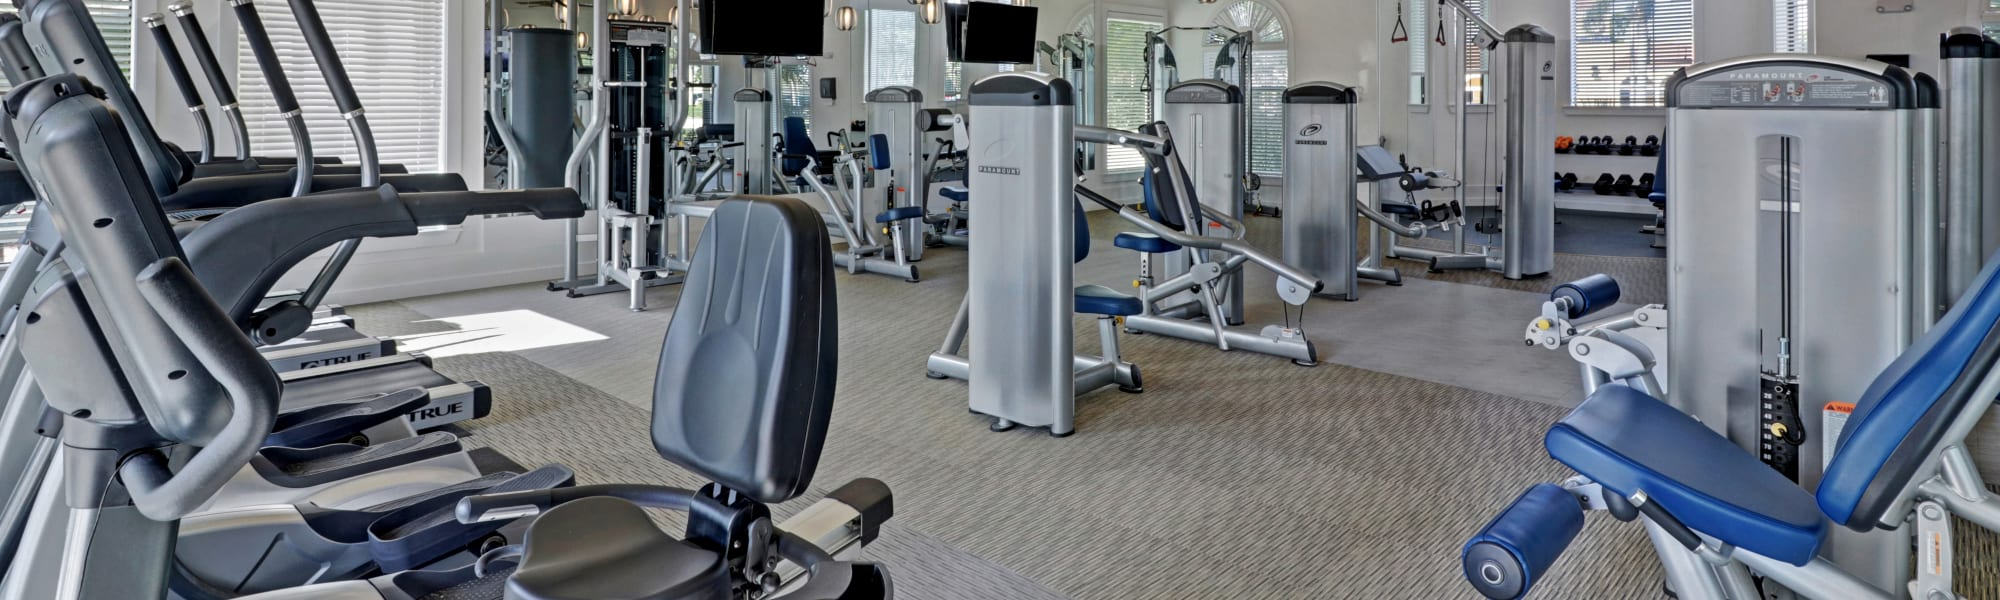 Amenities at Linden Pointe in Pompano Beach, Florida